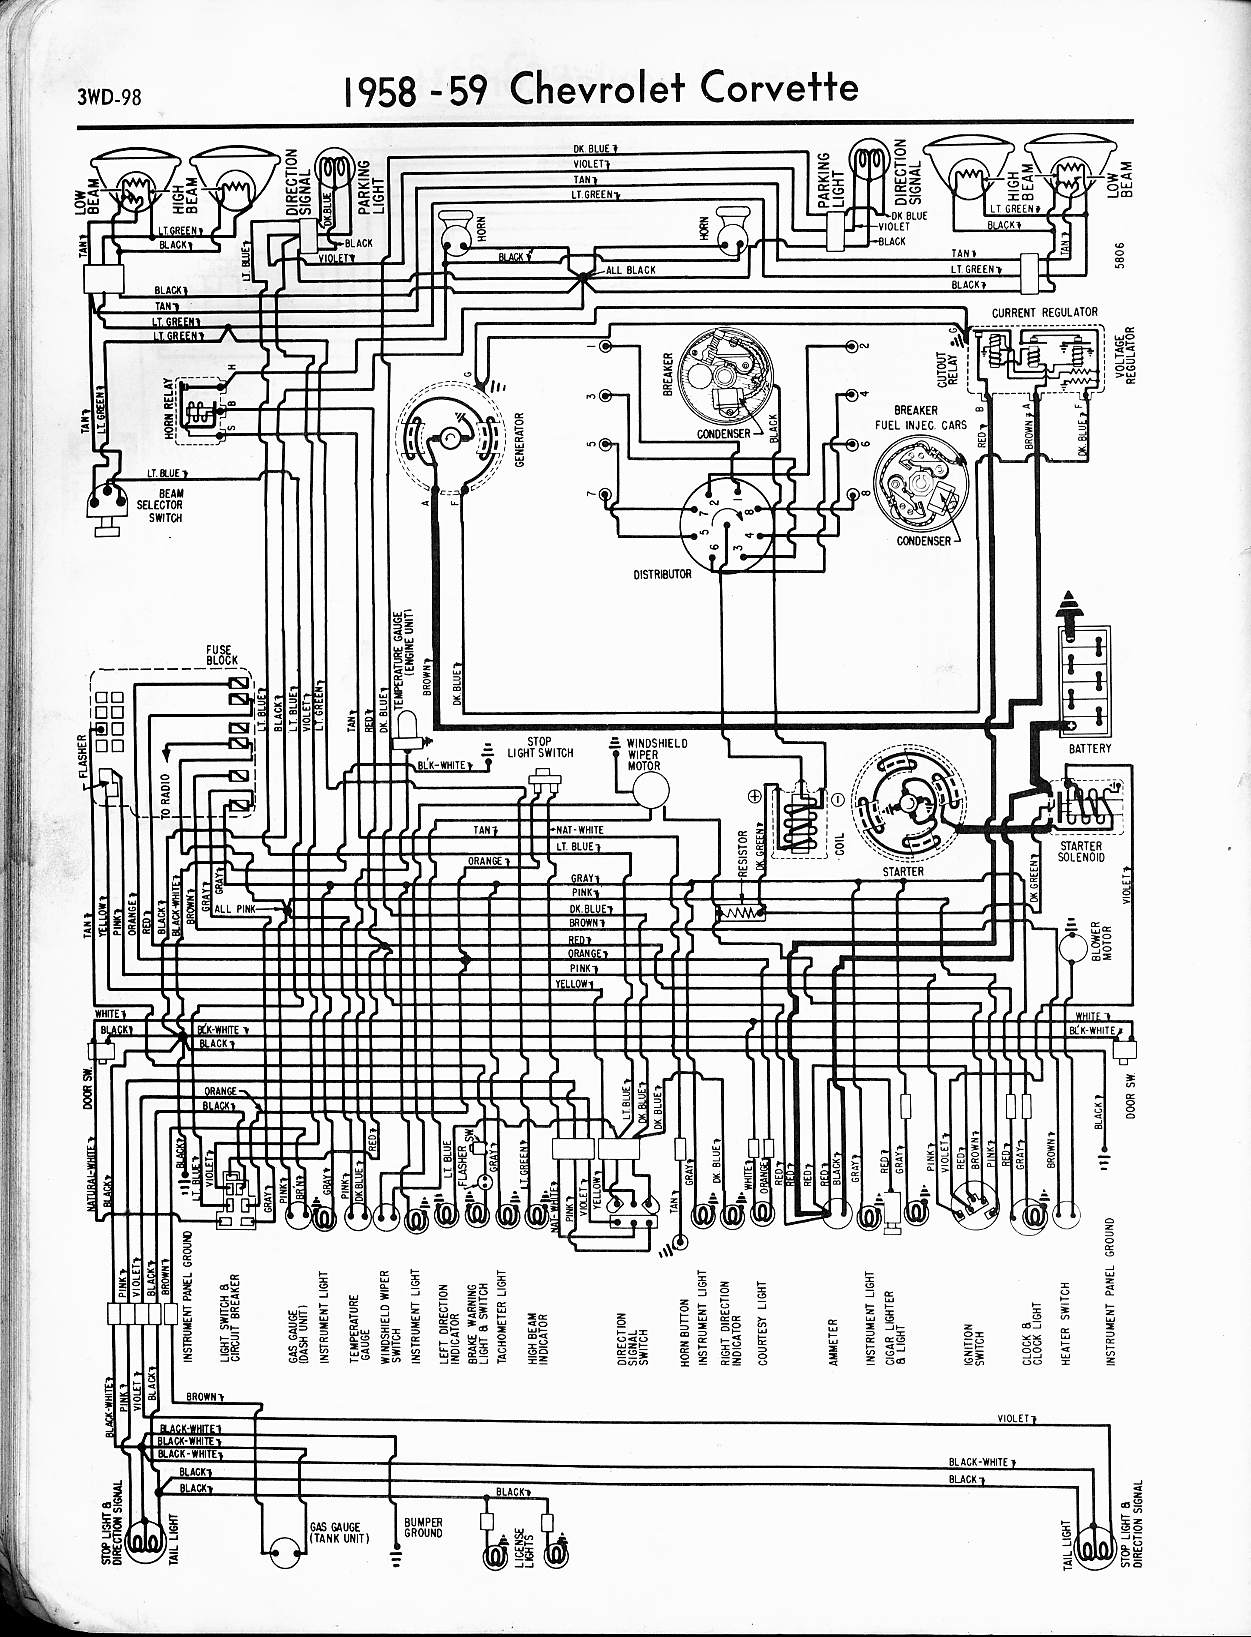 hight resolution of 1965 chevy impala wiring diagram wiring diagram schematics 1970 chevelle wiring harness diagram 1965 chevrolet wiring diagram schematic harness